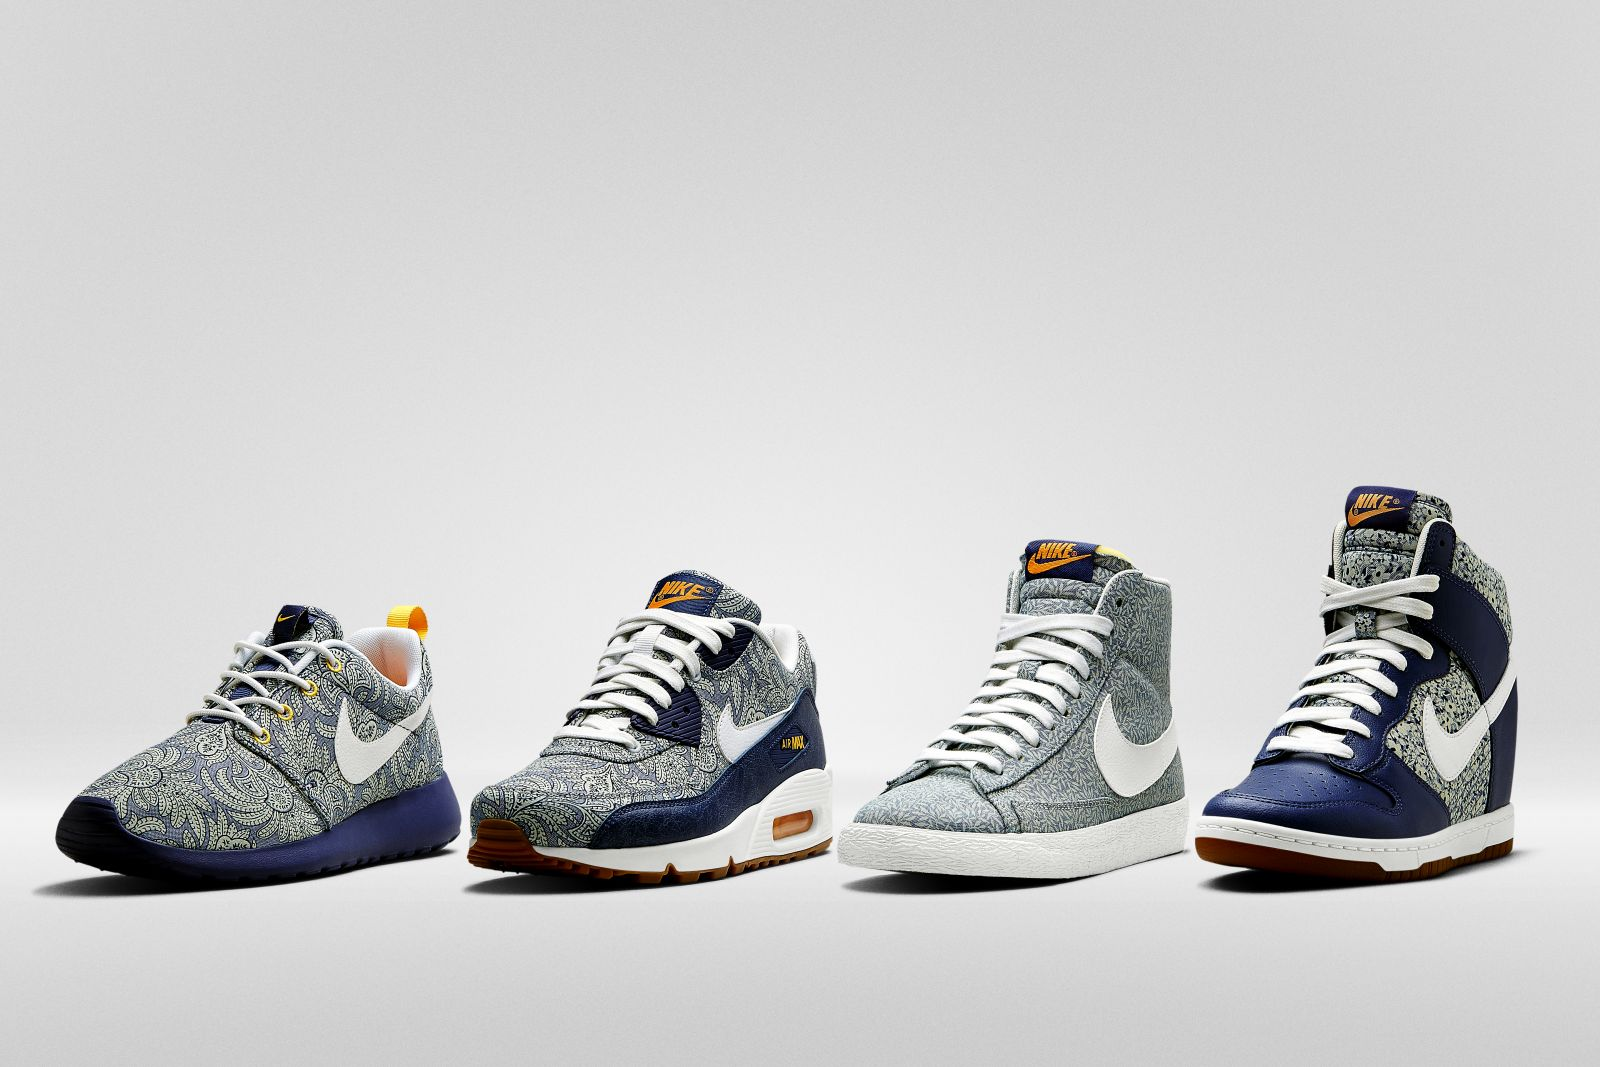 Liberty of London x Nike Sportswear Spring 2014 Collection